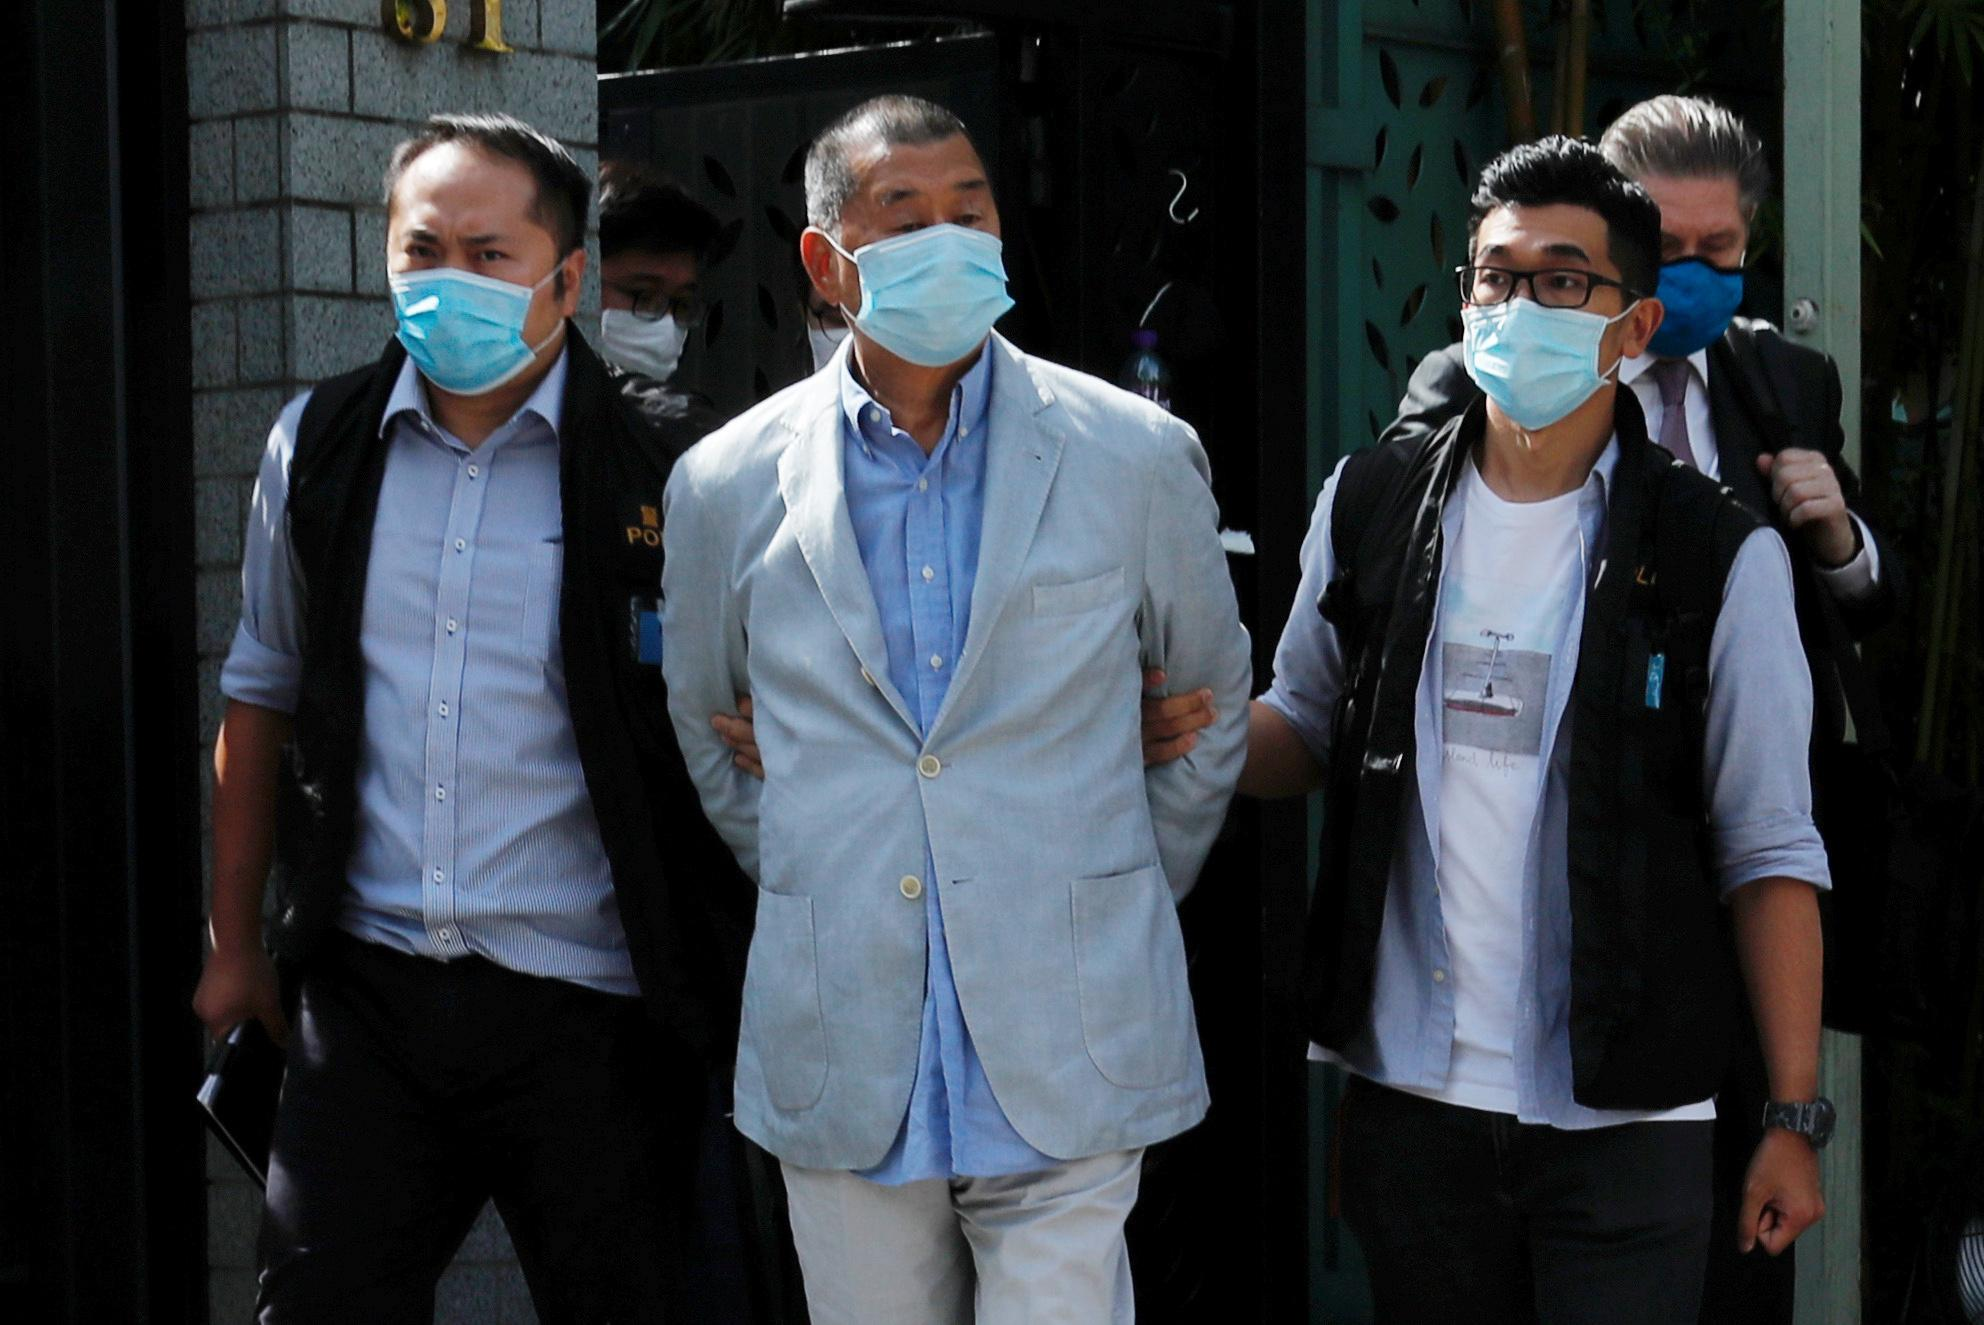 Hong Kong tycoon Jimmy Lai arrested under security law, bearing out 'worst fears' - Reuters